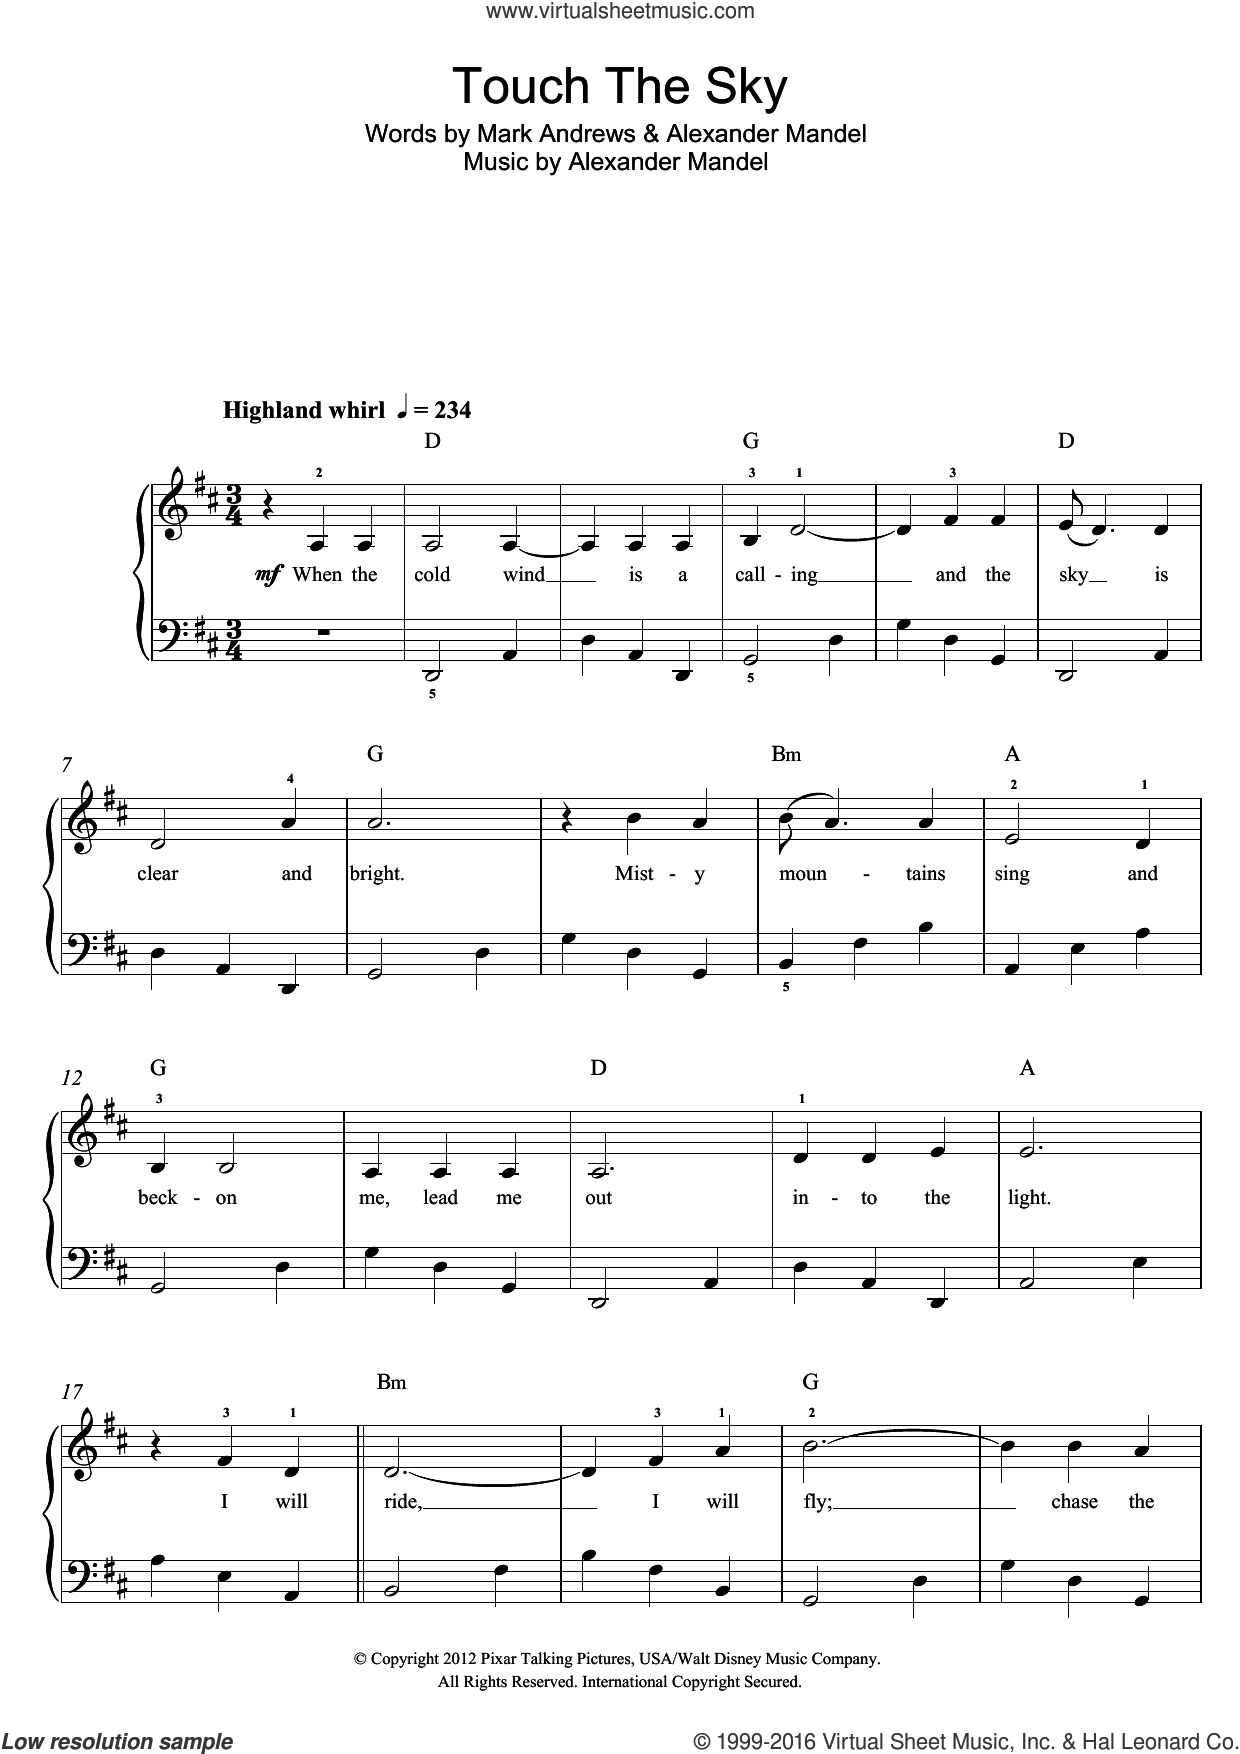 Touch The Sky (From 'Brave') sheet music for piano solo by Alexander Mandel and Mark Andrews, easy skill level